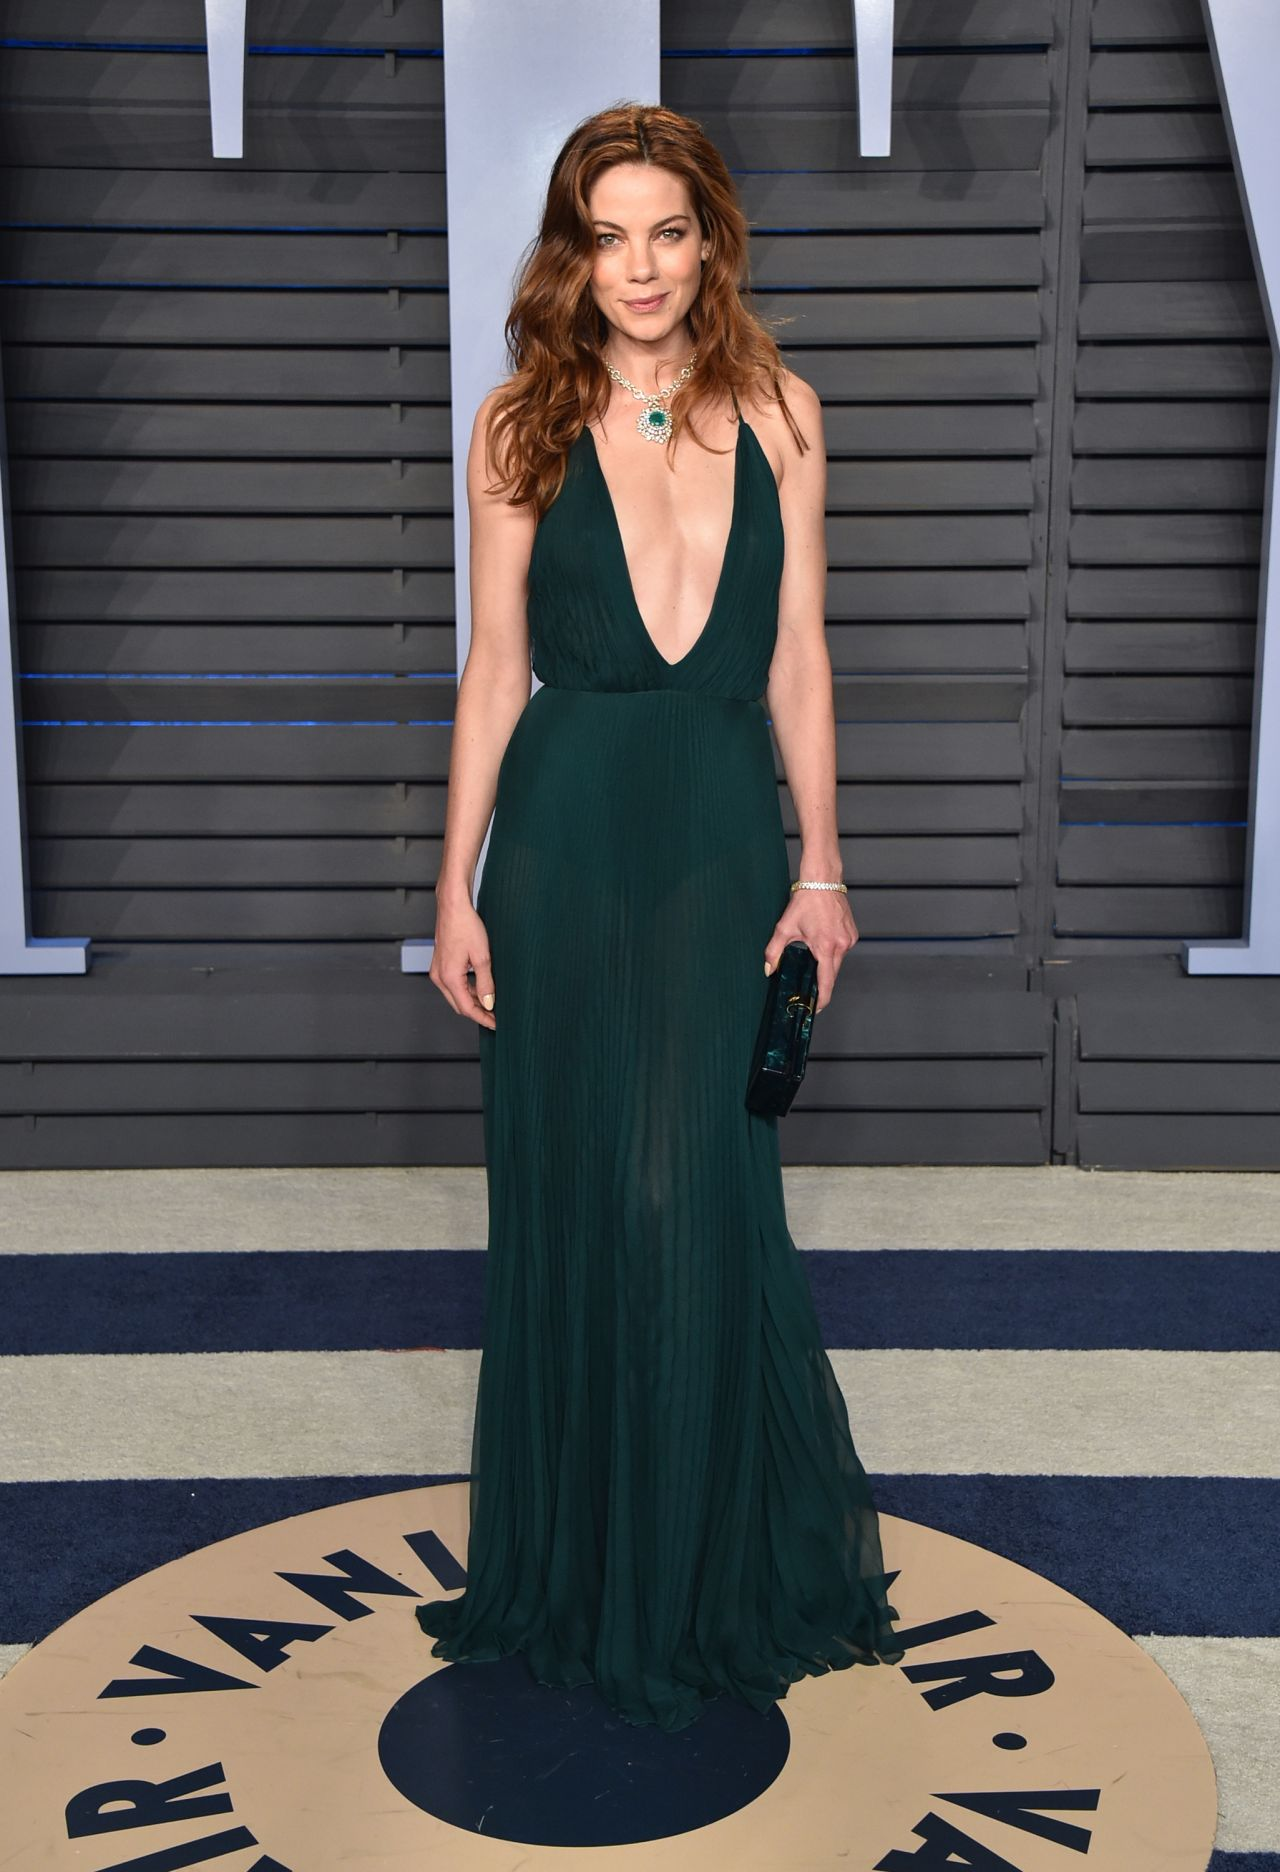 http://celebmafia.com/wp-content/uploads/2018/03/michelle-monaghan-2018-vanity-fair-oscar-party-in-beverly-hills-0.jpg